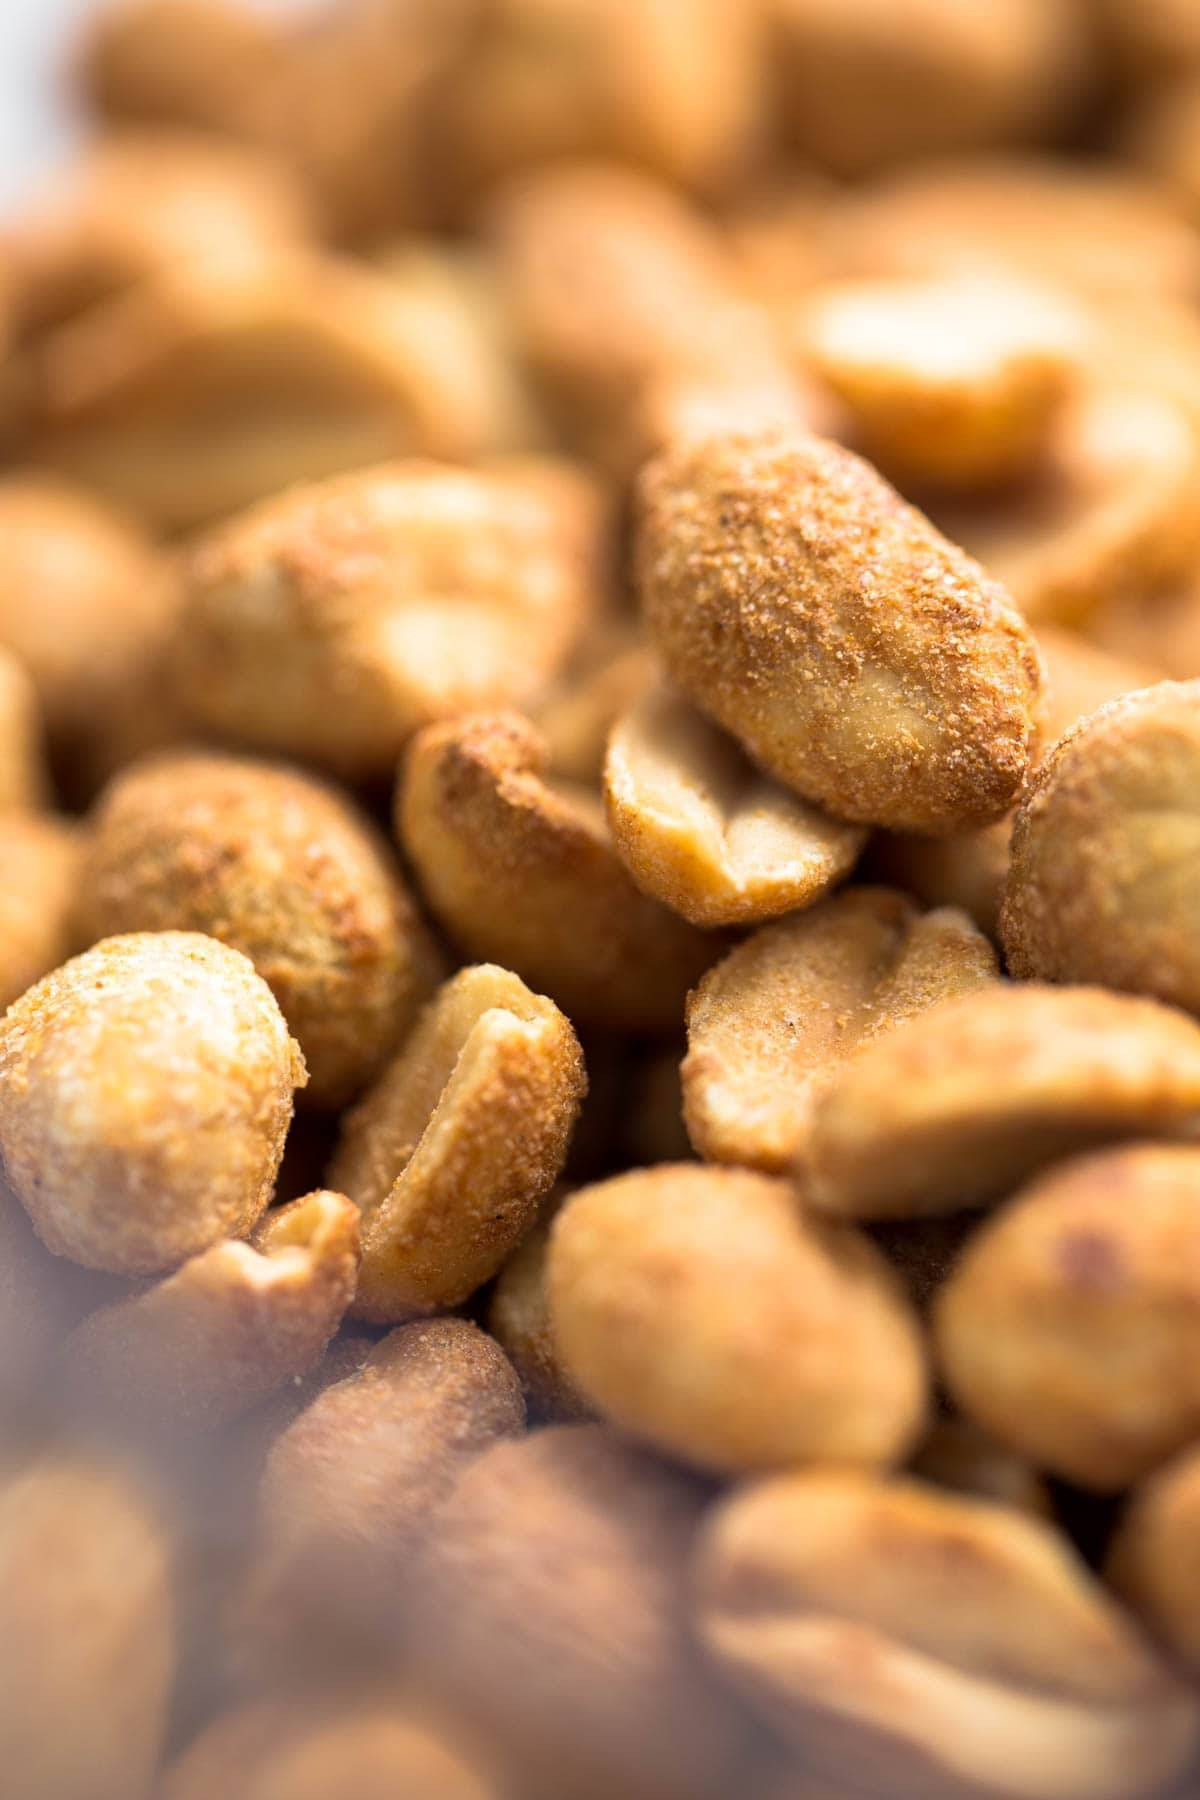 Peanuts for Homemade Peanut Butter